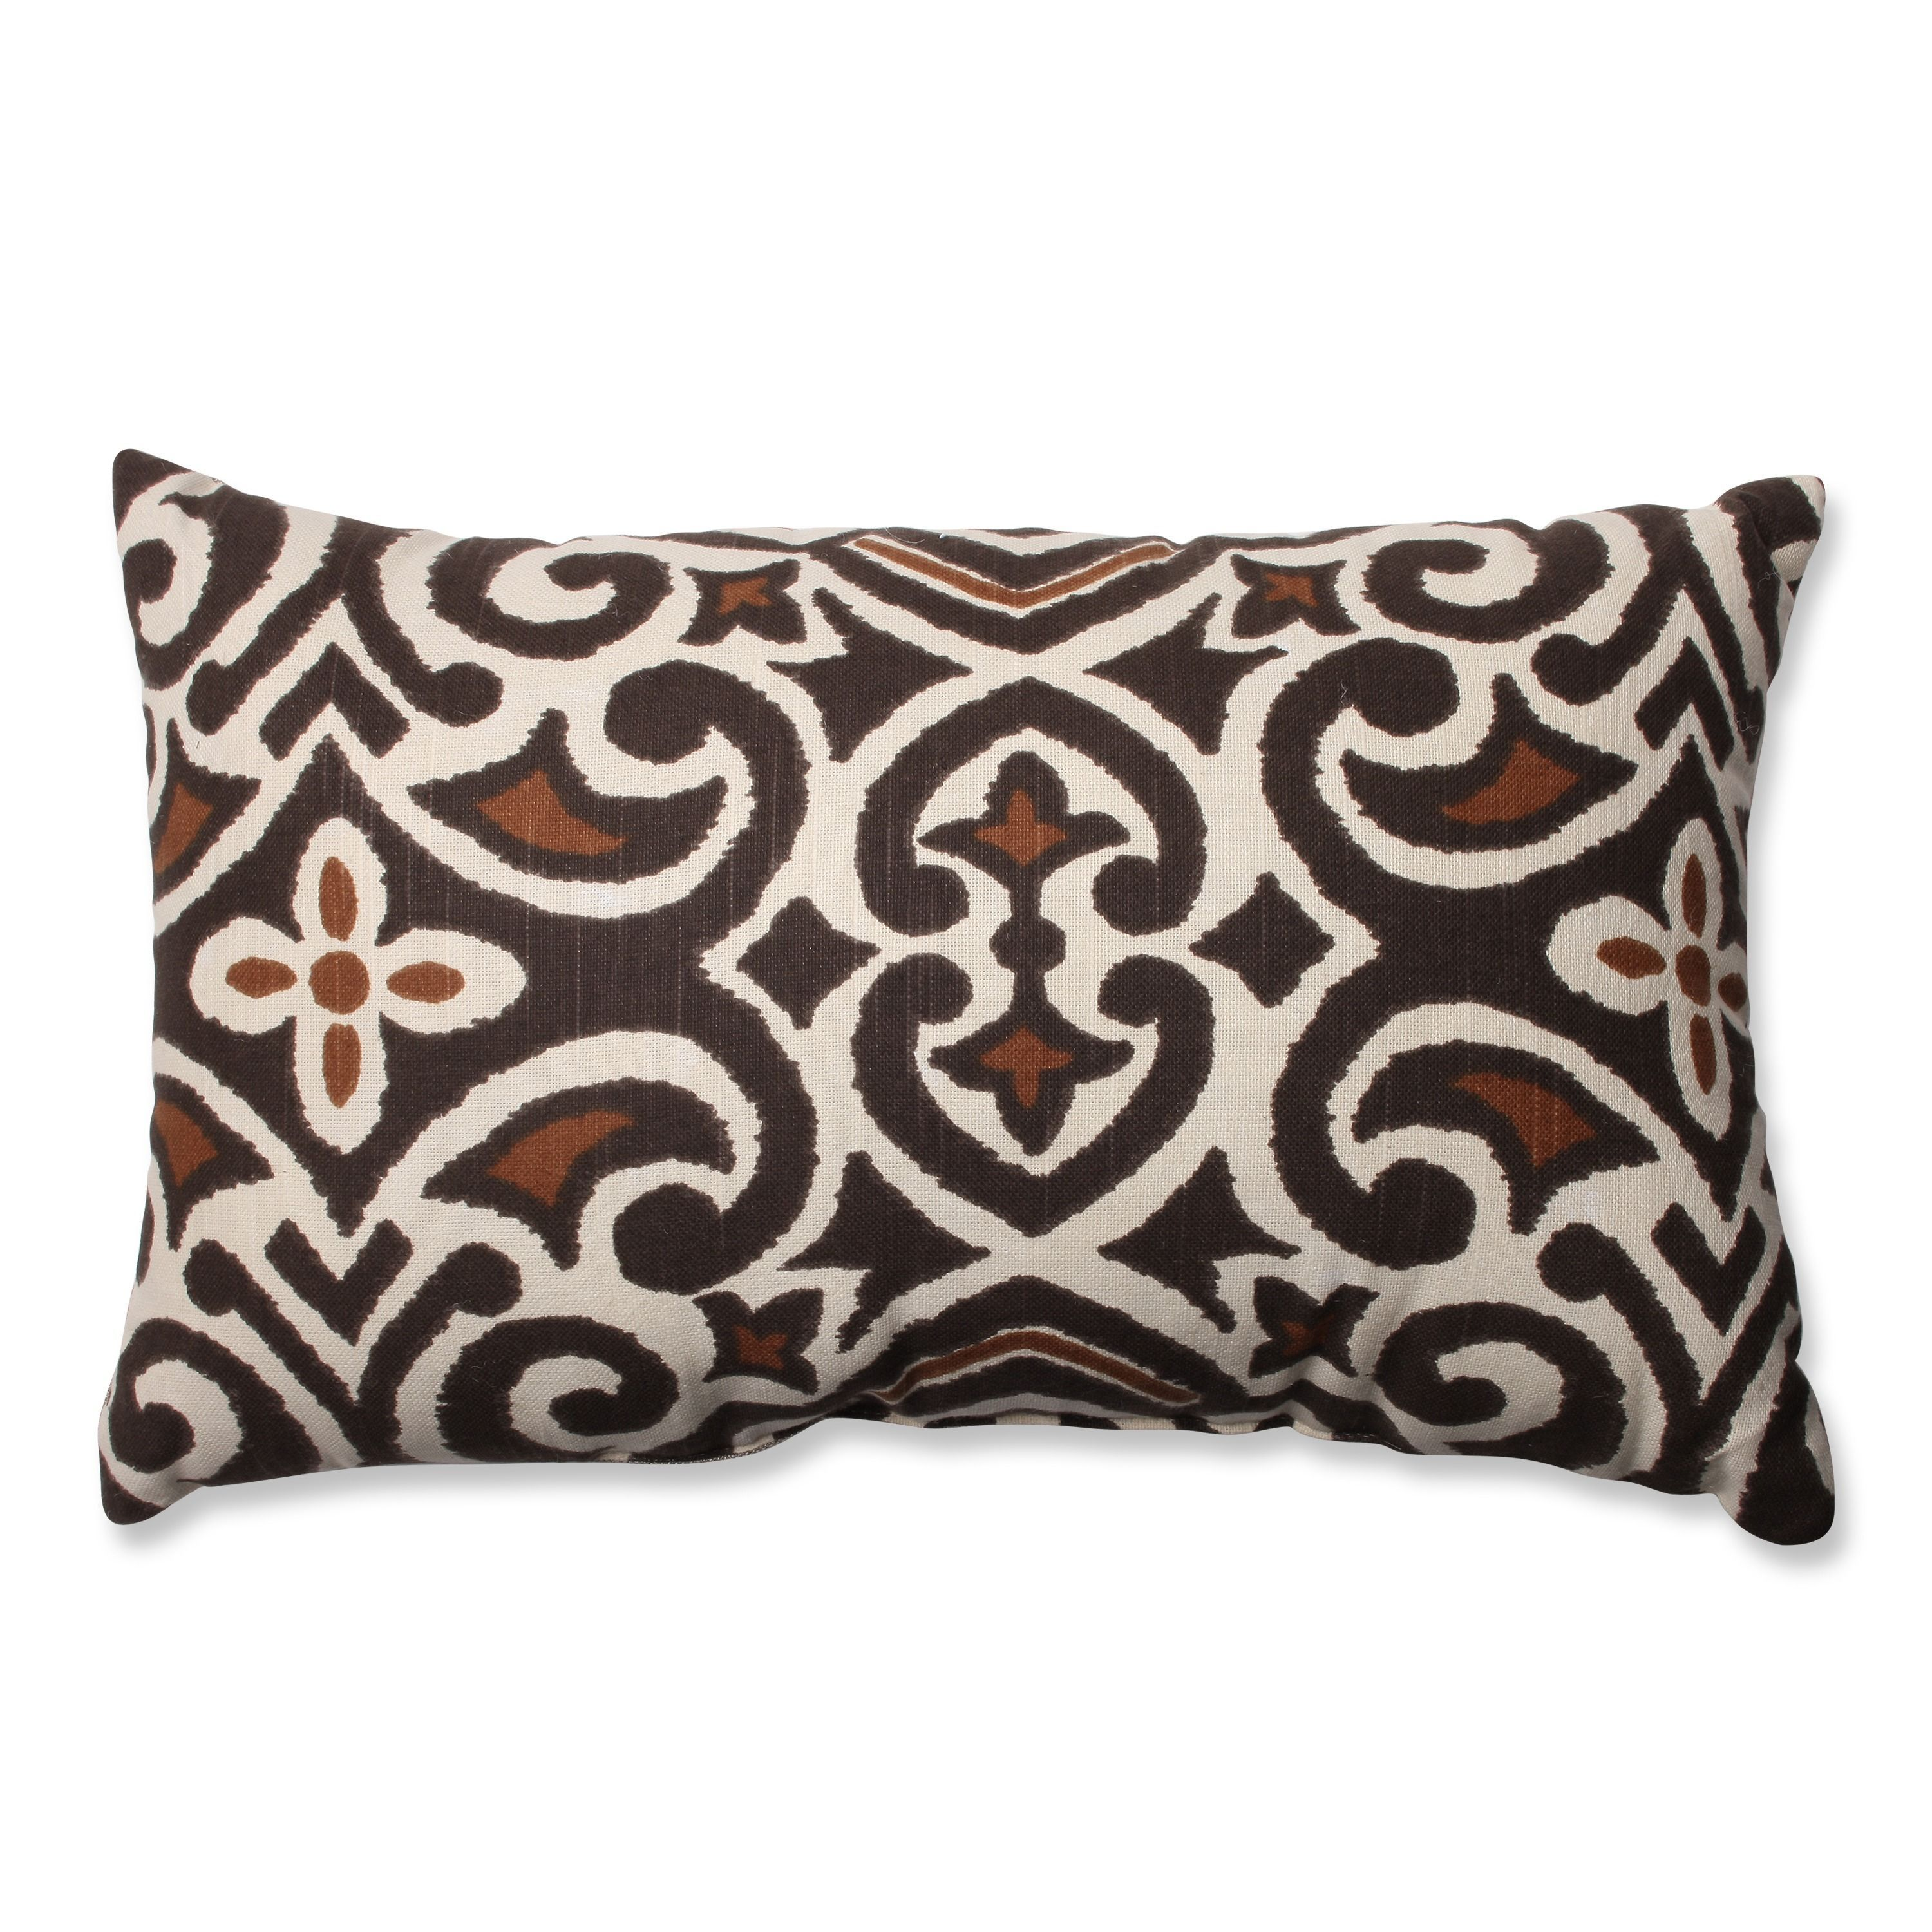 Overstock Com Online Shopping Bedding Furniture Electronics Jewelry Clothing More Brown Decorative Pillows Pillows Perfect Pillow